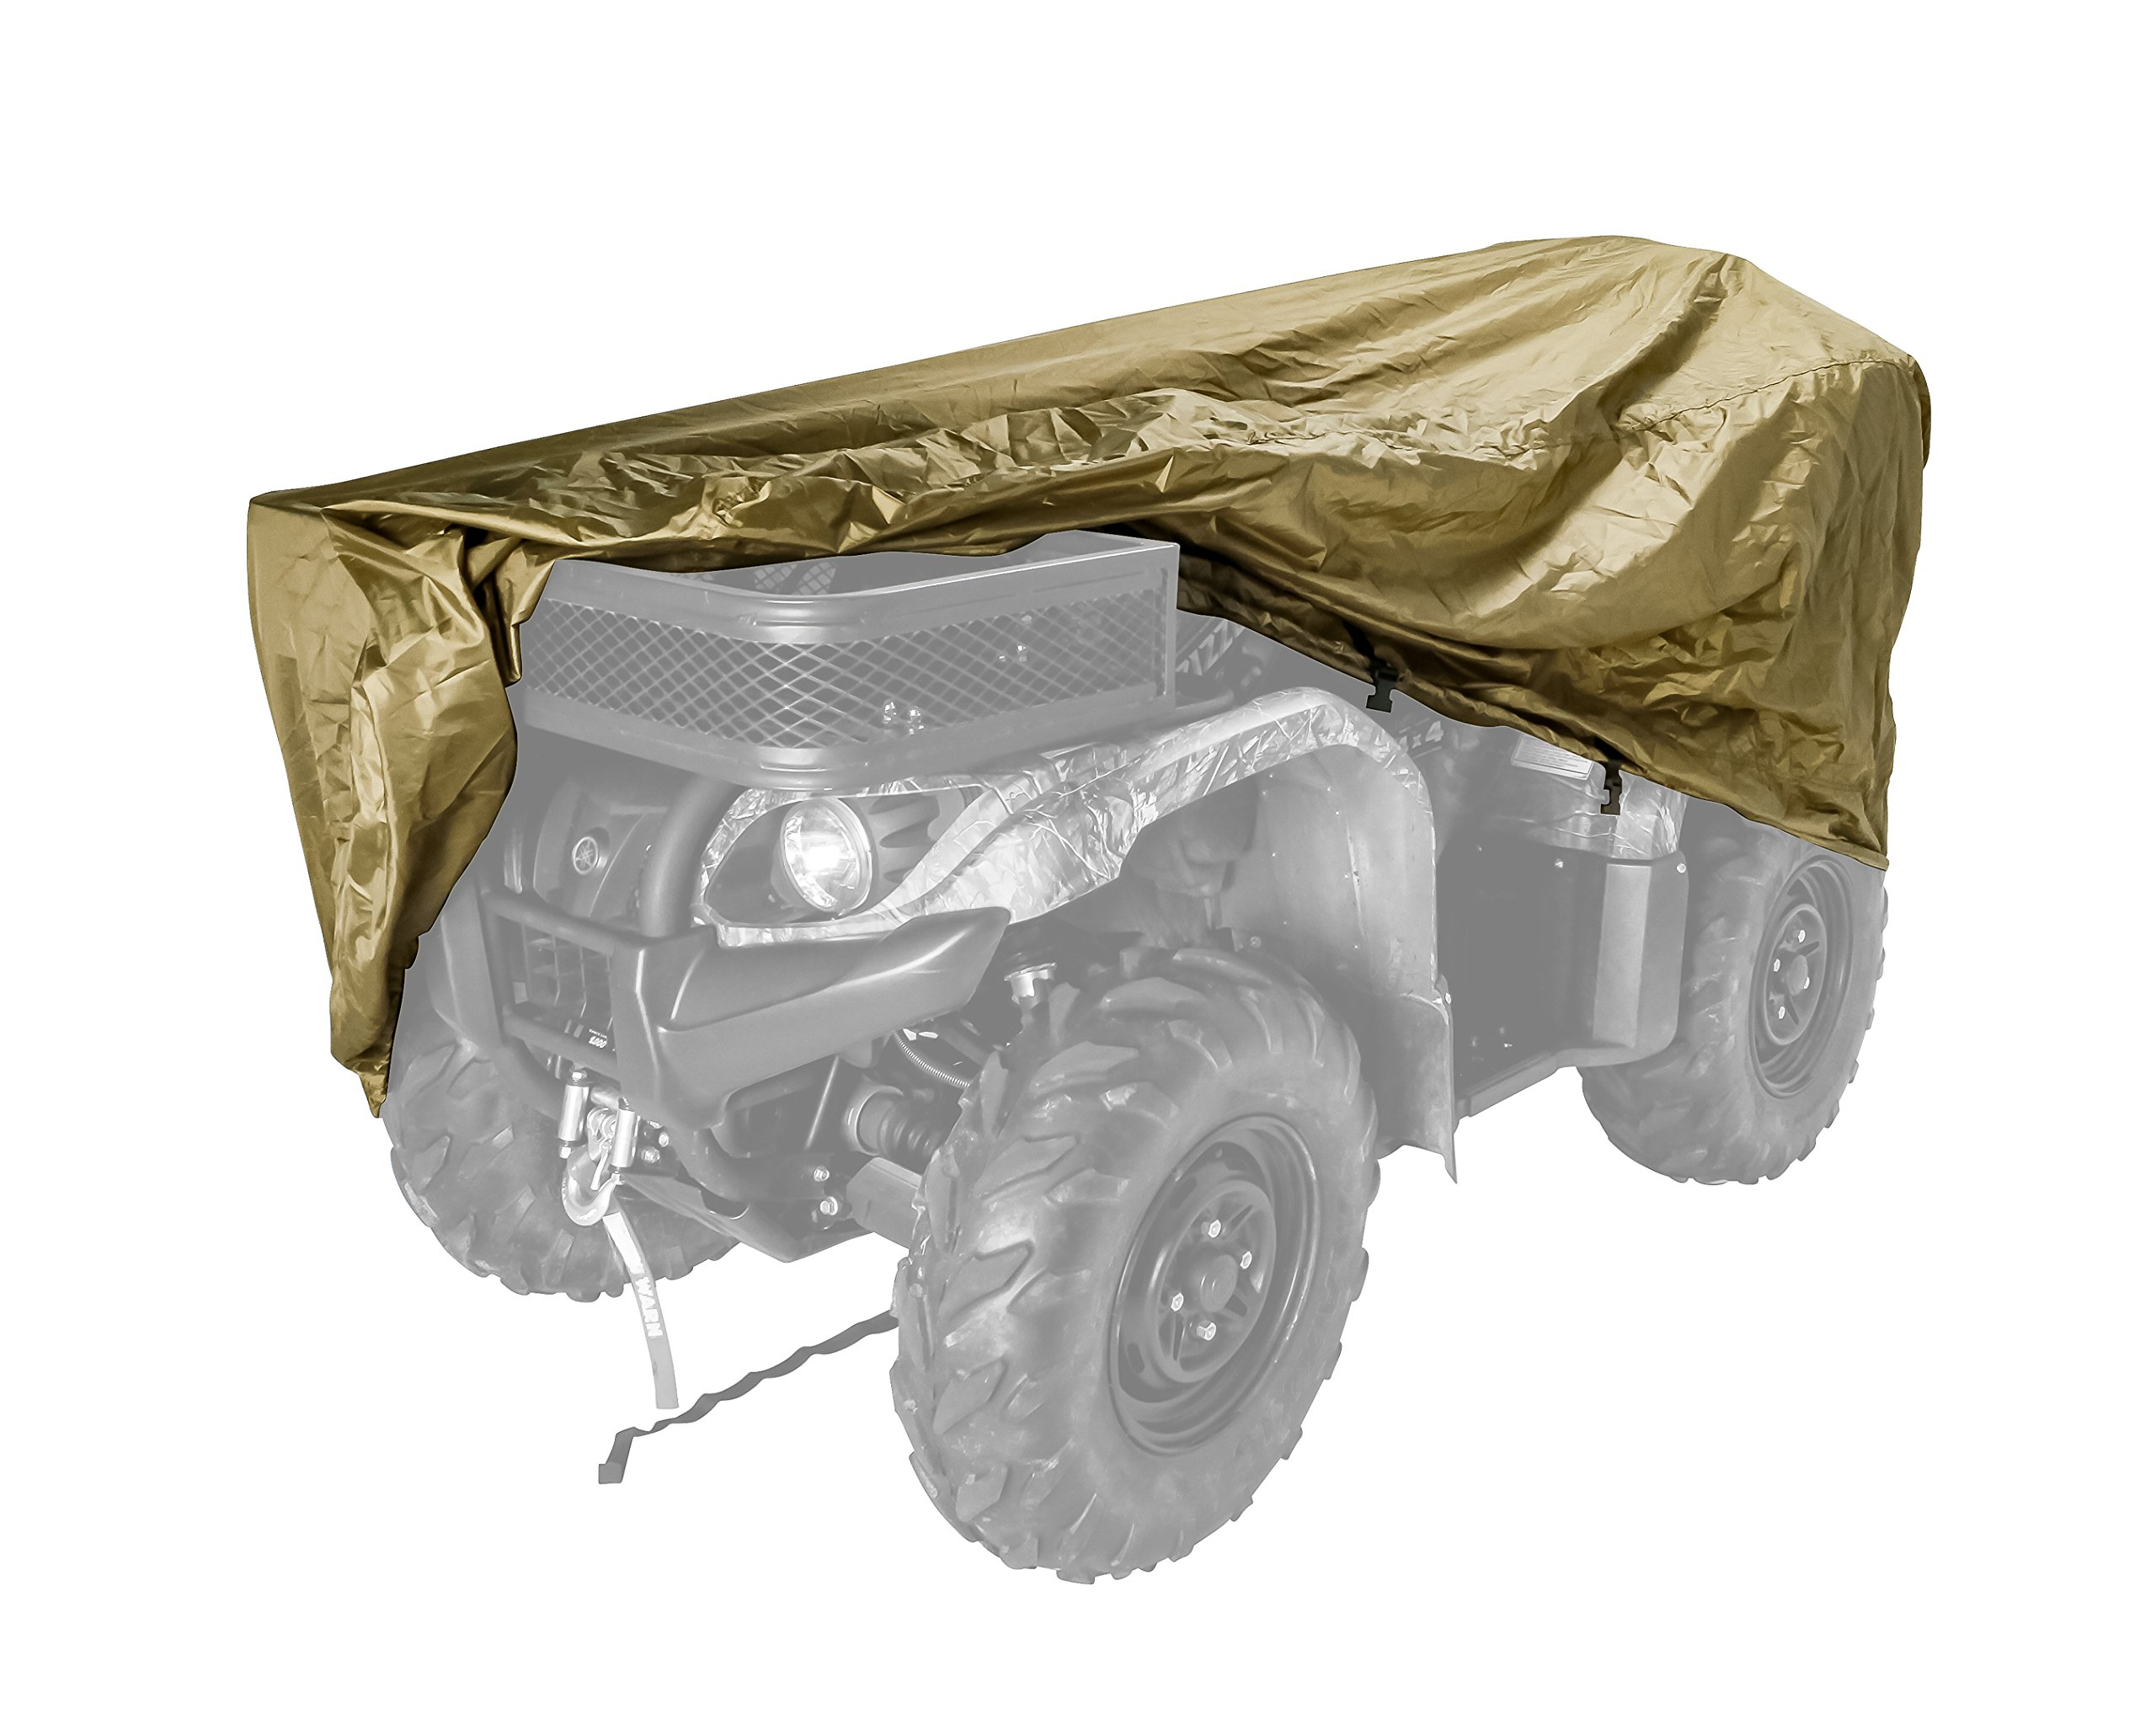 Black Boar Extra Large ATV Cover (450cc and Up) - Olive Drab, Protect Your ATV from Rain, Snow, Dirt and Damaging UV Rays While in Storage (66020)